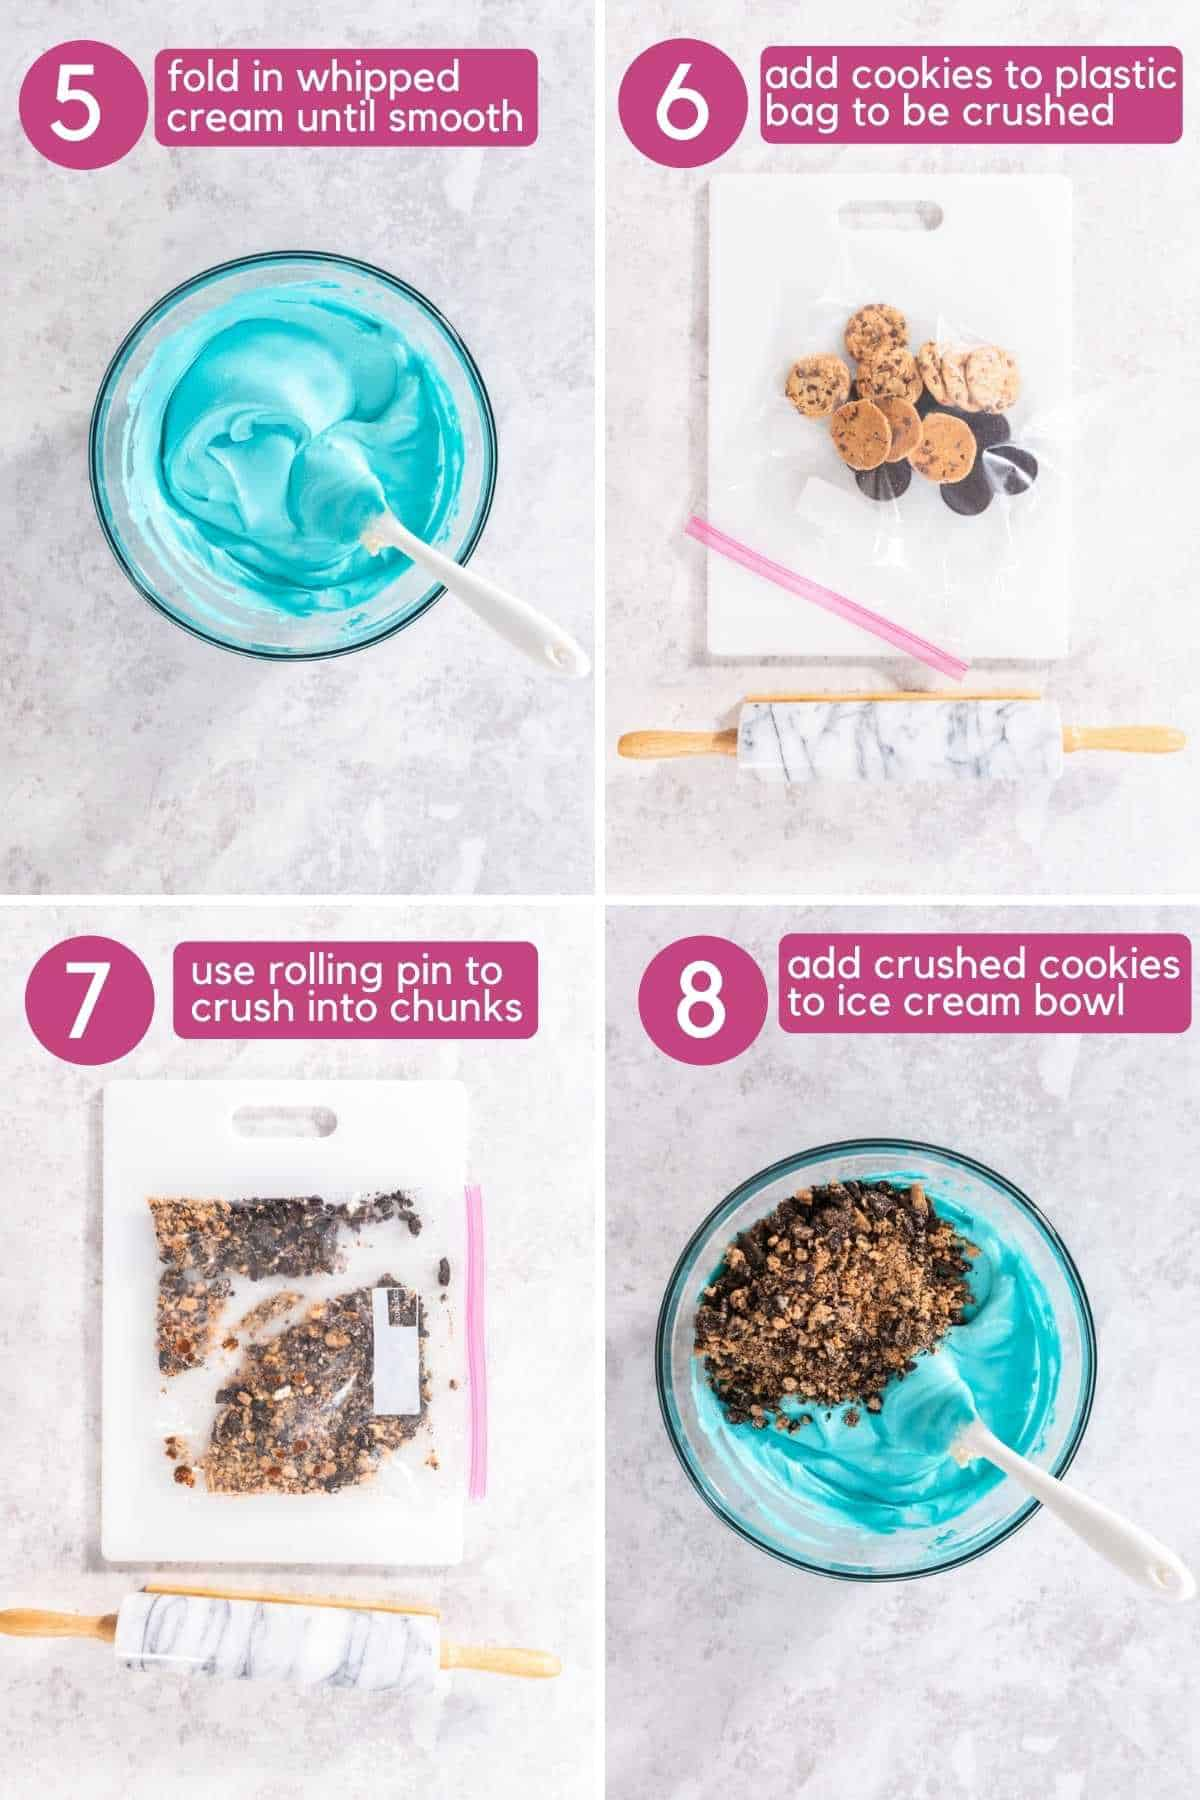 Fold whipped cream into condensed milk mixture, crush cookies and add to ice cream bowl for Cookie Monster Ice Cream.